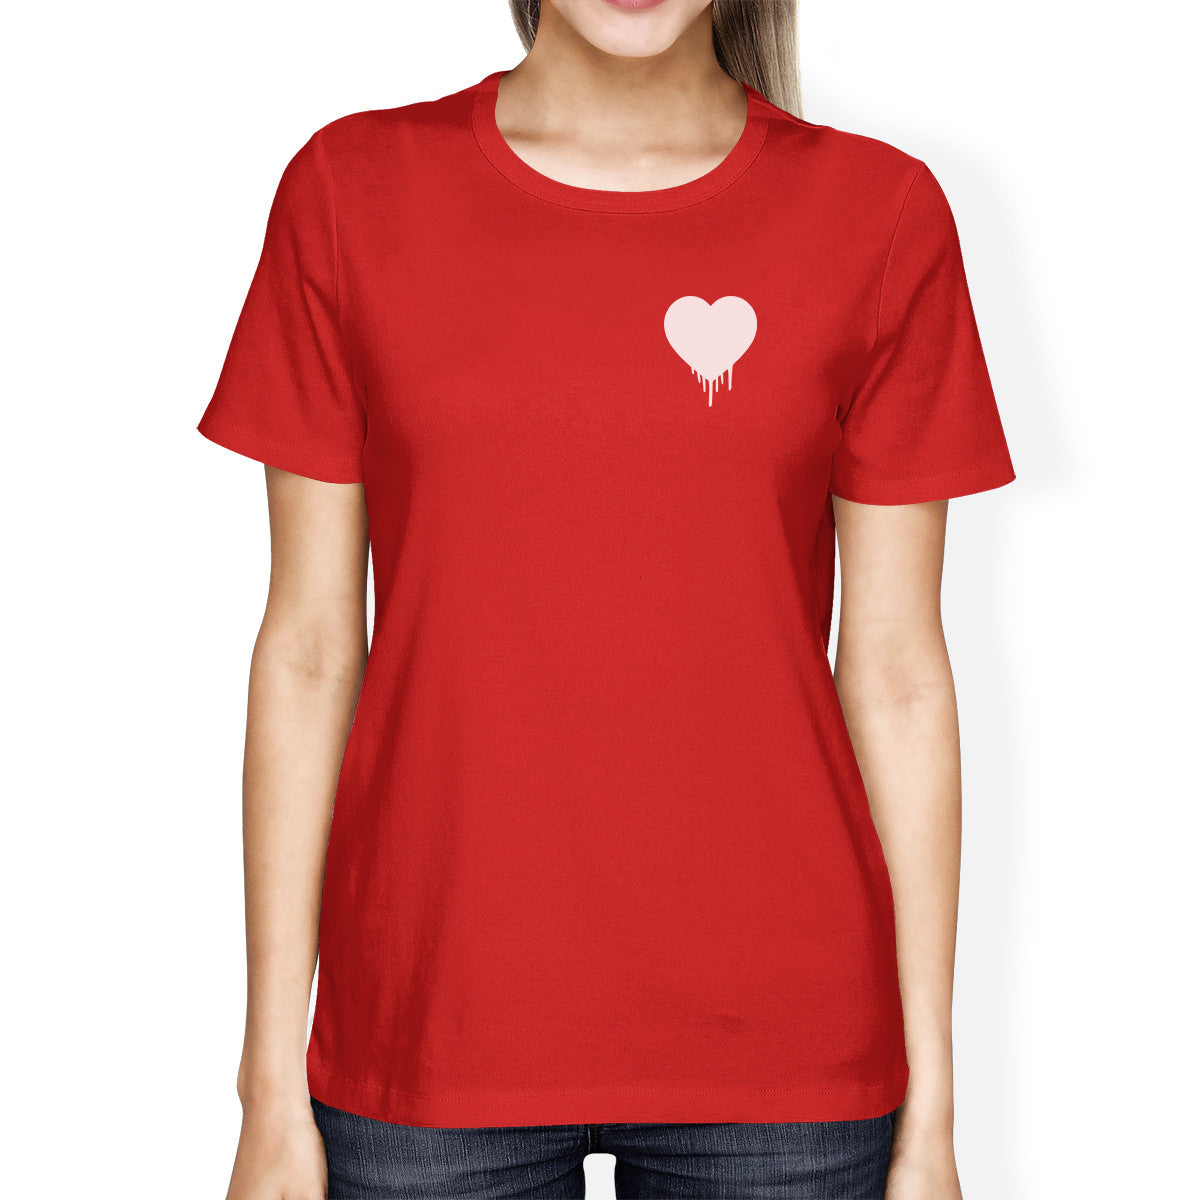 Melting Heart Women's Red T-shirt Cute Graphic Gift Ideas Birthdays